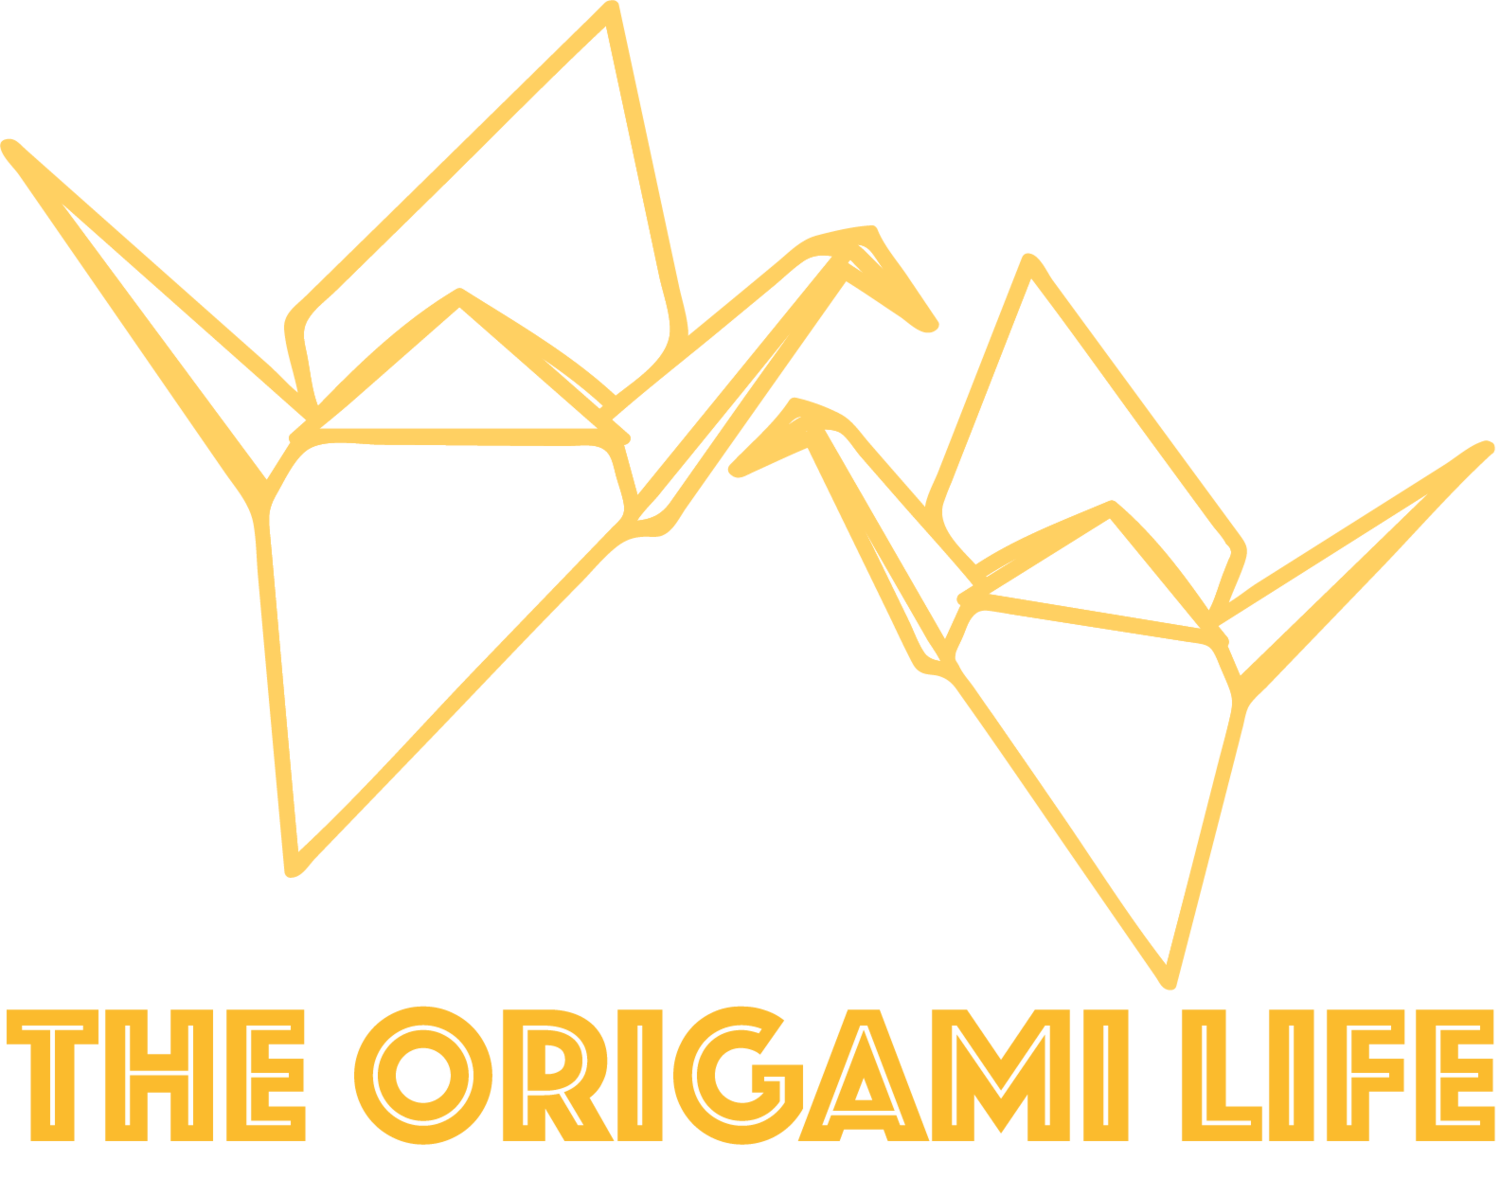 The Origami Life